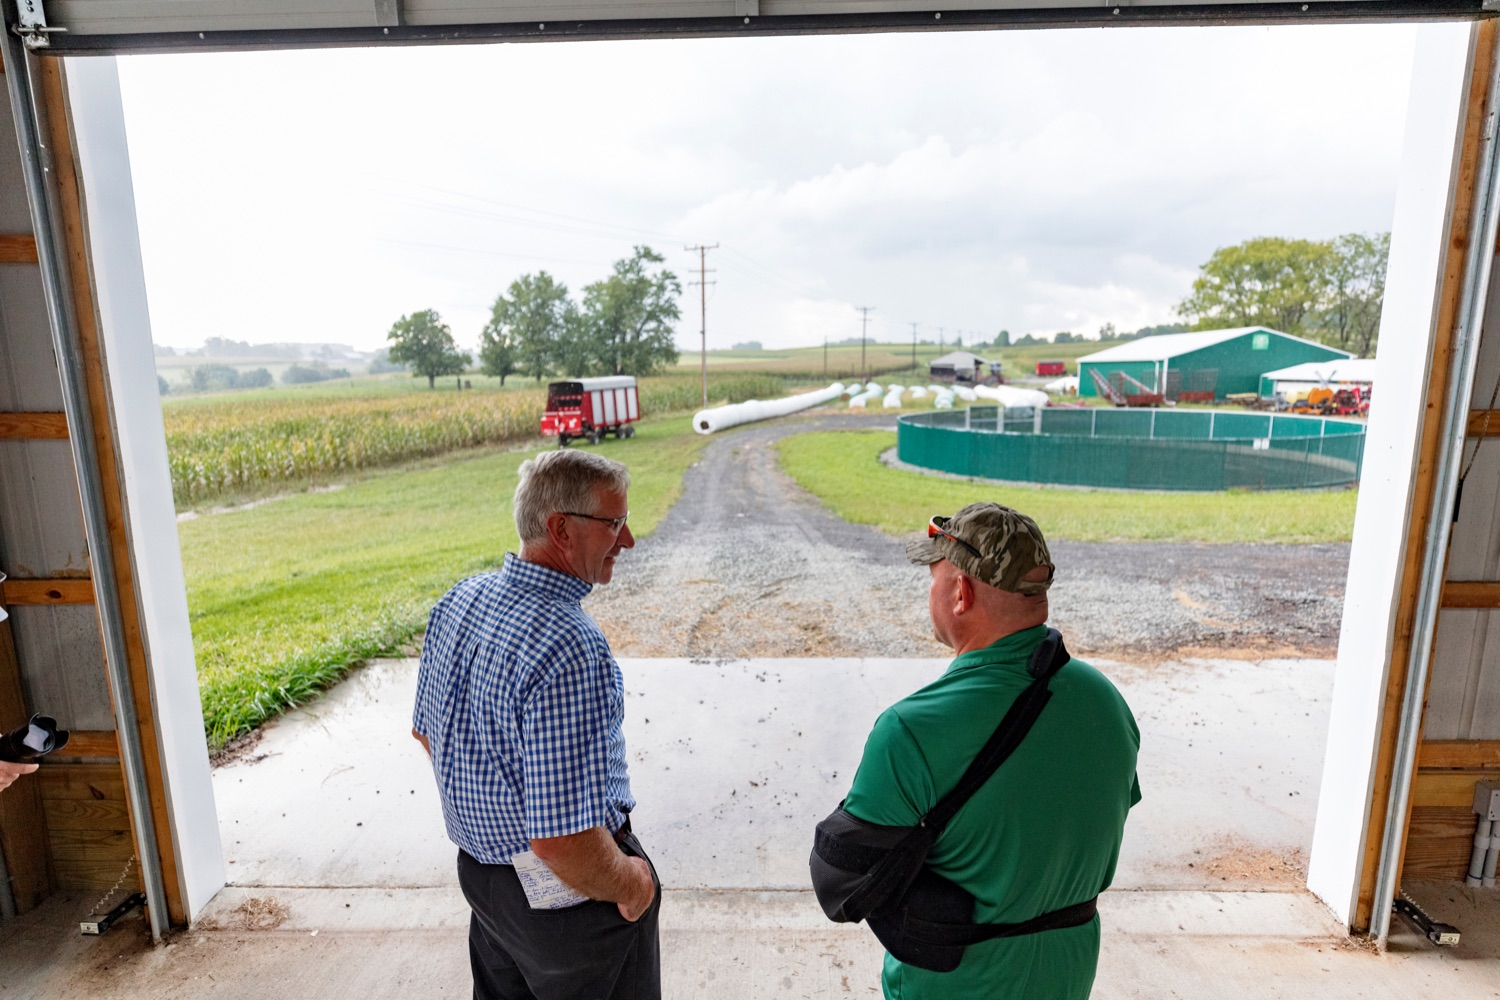 """<a href=""""https://filesource.wostreaming.net/commonwealthofpa/photo/19097_AG_DairyInnovation_NK_010.jpg"""" target=""""_blank"""">⇣Download Photo<br></a>PA Dept. of Agriculture Secretary Russell Redding talks with Todd Frye, co-owner of Pleasant Lane Farms, in Latrobe on Thursday, September 9, 2021. In 2019, Pleasant Lane Farms reconstructed their operation and on-farm business plan to safeguard the farms future for the next generation. The Frye family constructed a new barn equipped with a robotic milker, atmospheric climate control to regulate barn temperature and cow brushes to promote cow comfort. The barn directly supplies the on-farm cheese processing facility, which received a $364,082 Pennsylvania Dairy Investment Program grant to support marketing and value-added processing equipment investments. Today, the creamery at Pleasant Lane Farms processes 15,000 to 25,000 pounds of milk and produces more 1,700 to 2,900 pounds of cheese each week."""